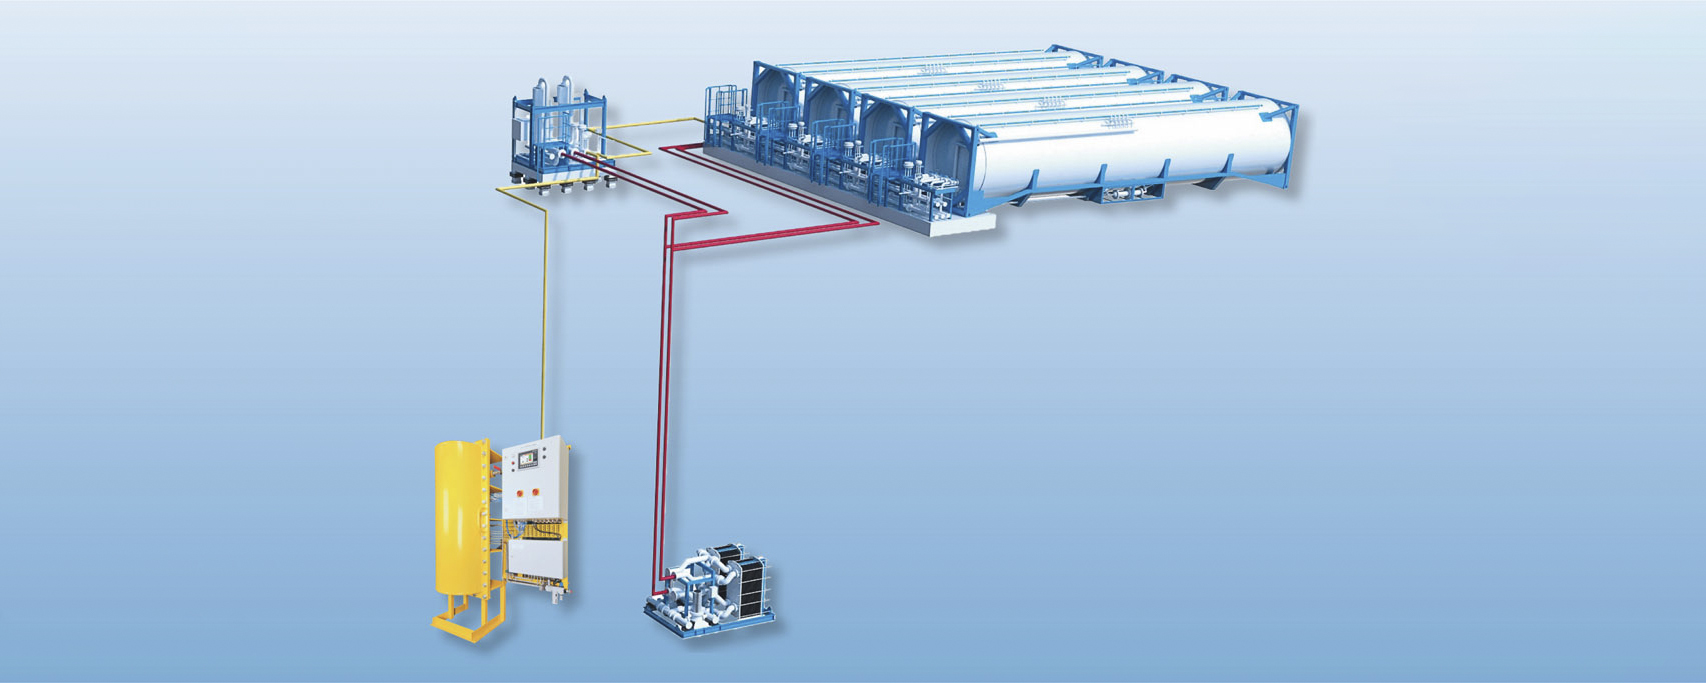 Increasing flexibility in LNG fuel handling master